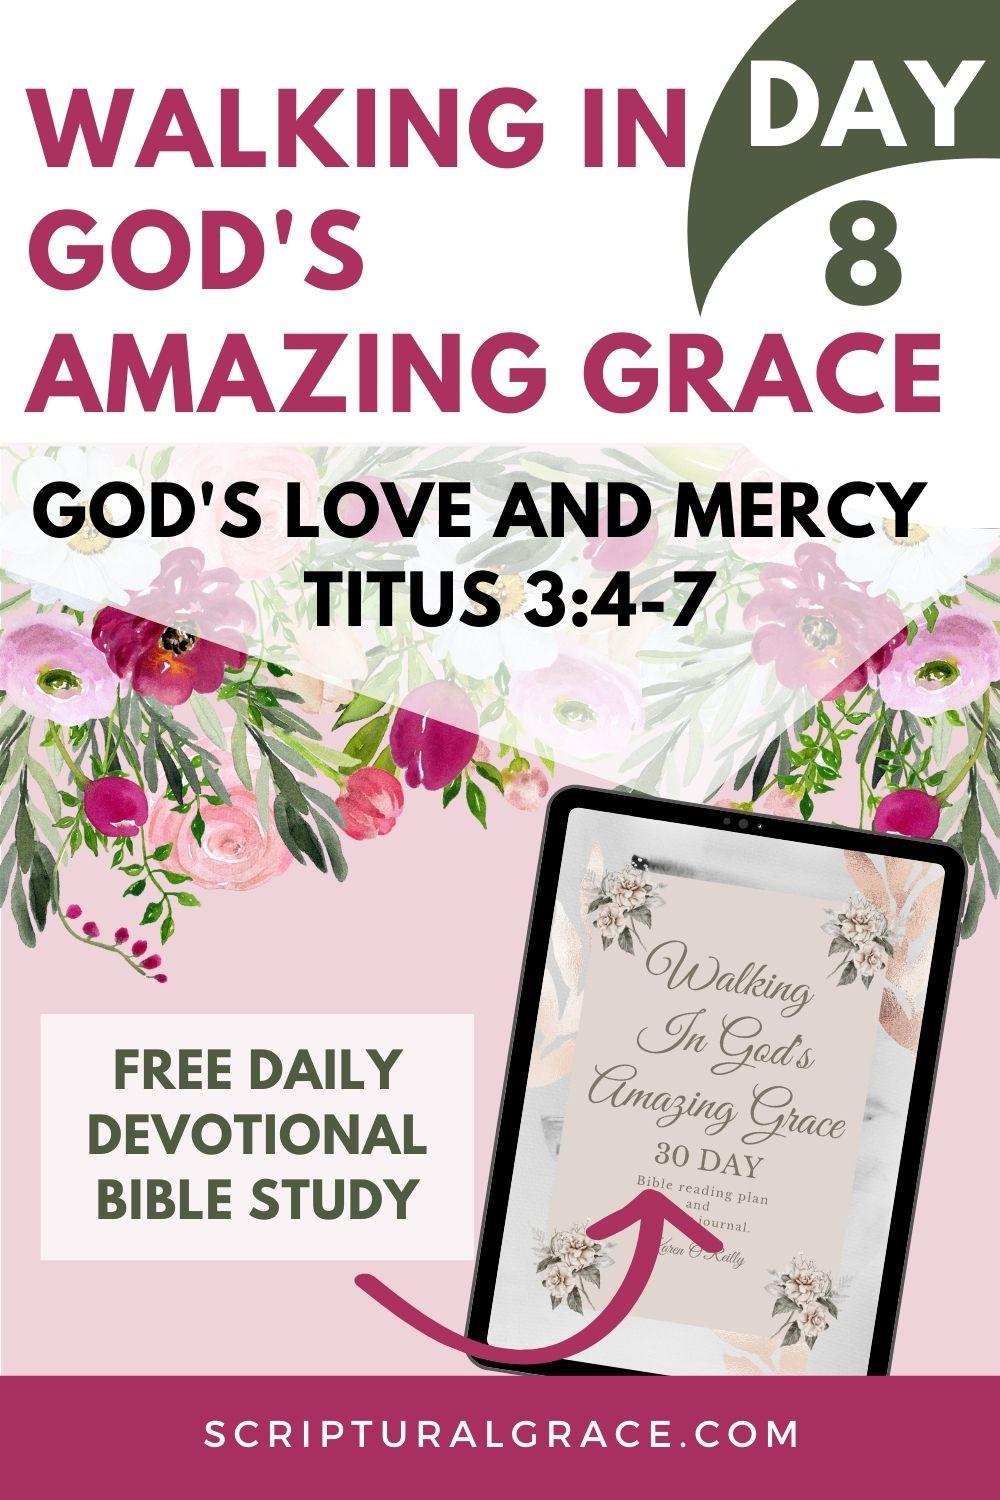 Daily devotional Titus 3:4-7 Day 8 walking in God's amazing grace free printable